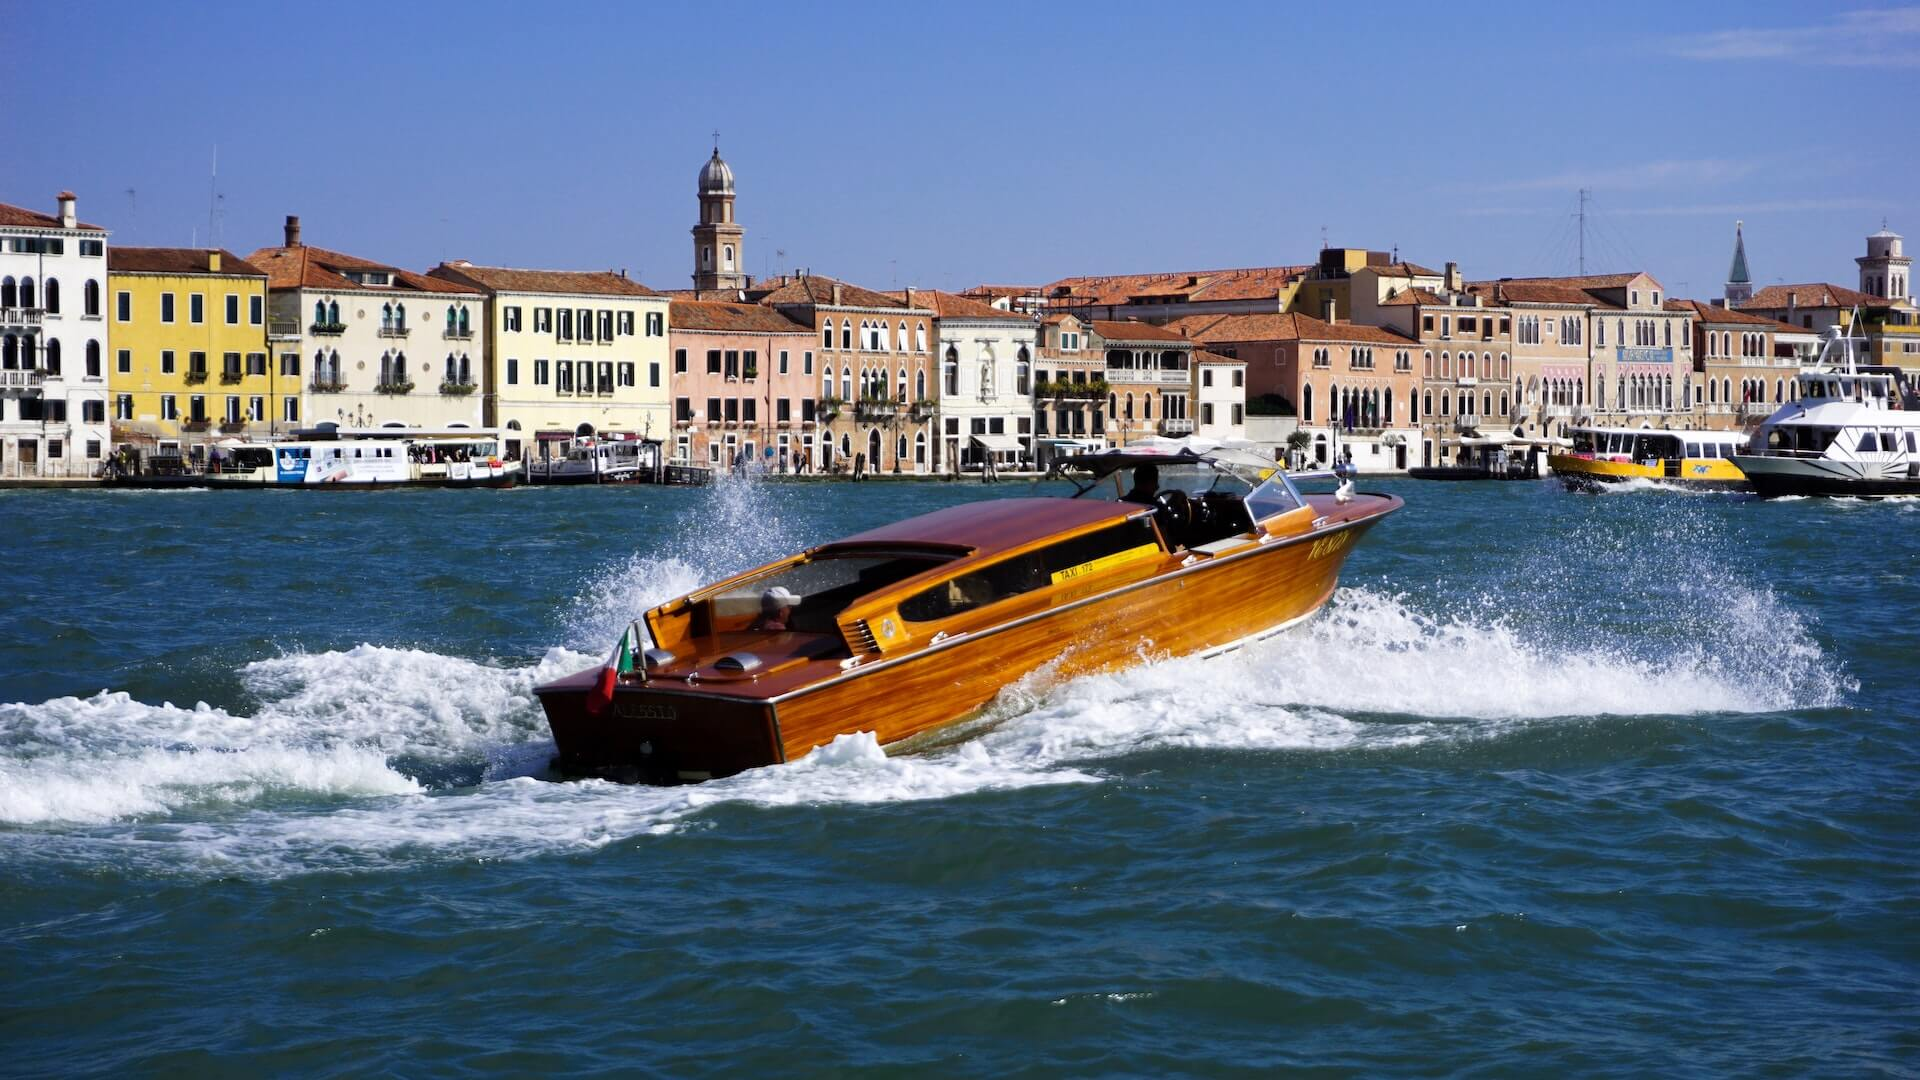 Voyage of the venice lagoon